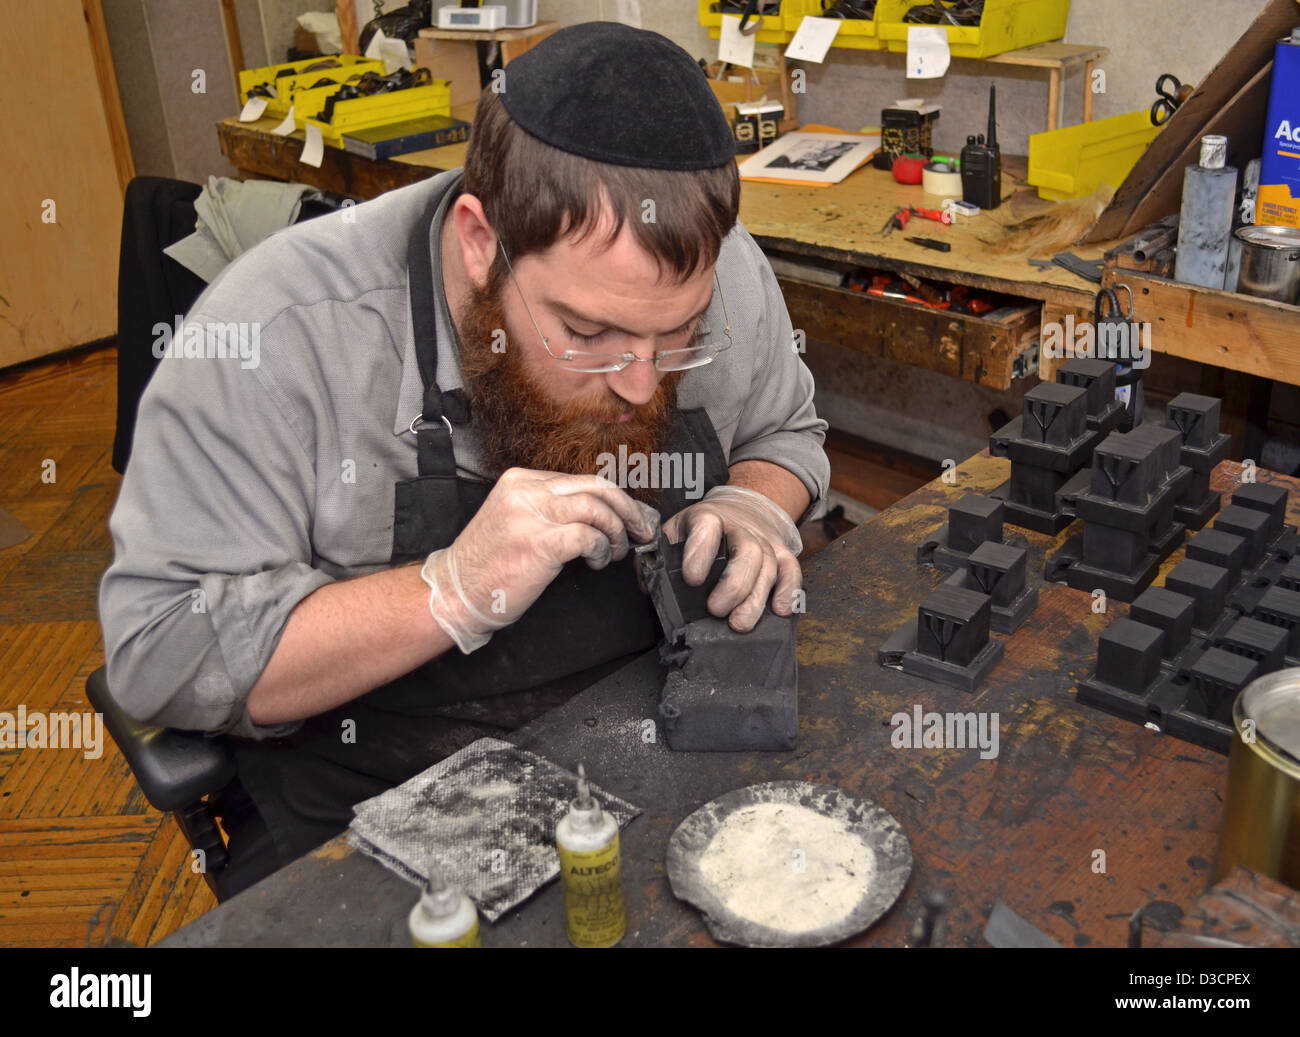 Making phylacteries (teffilin) at Hasofer, a scribe shop, on Kingston Avenue in the Crown Heights section of Brooklyn. - Stock Image